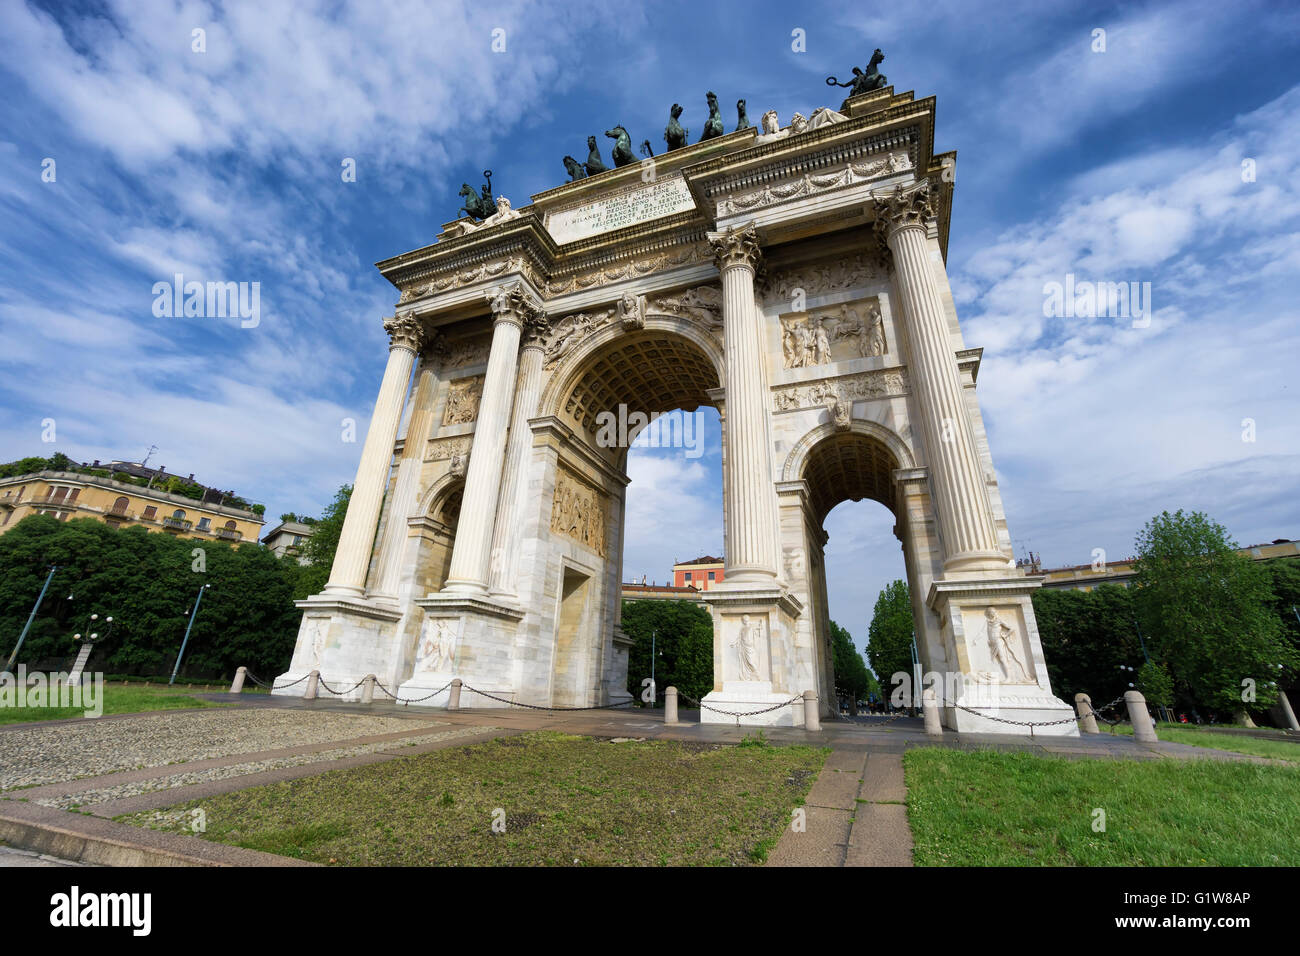 Arch of Peace, Milan, Lombardy, Italy - Stock Image